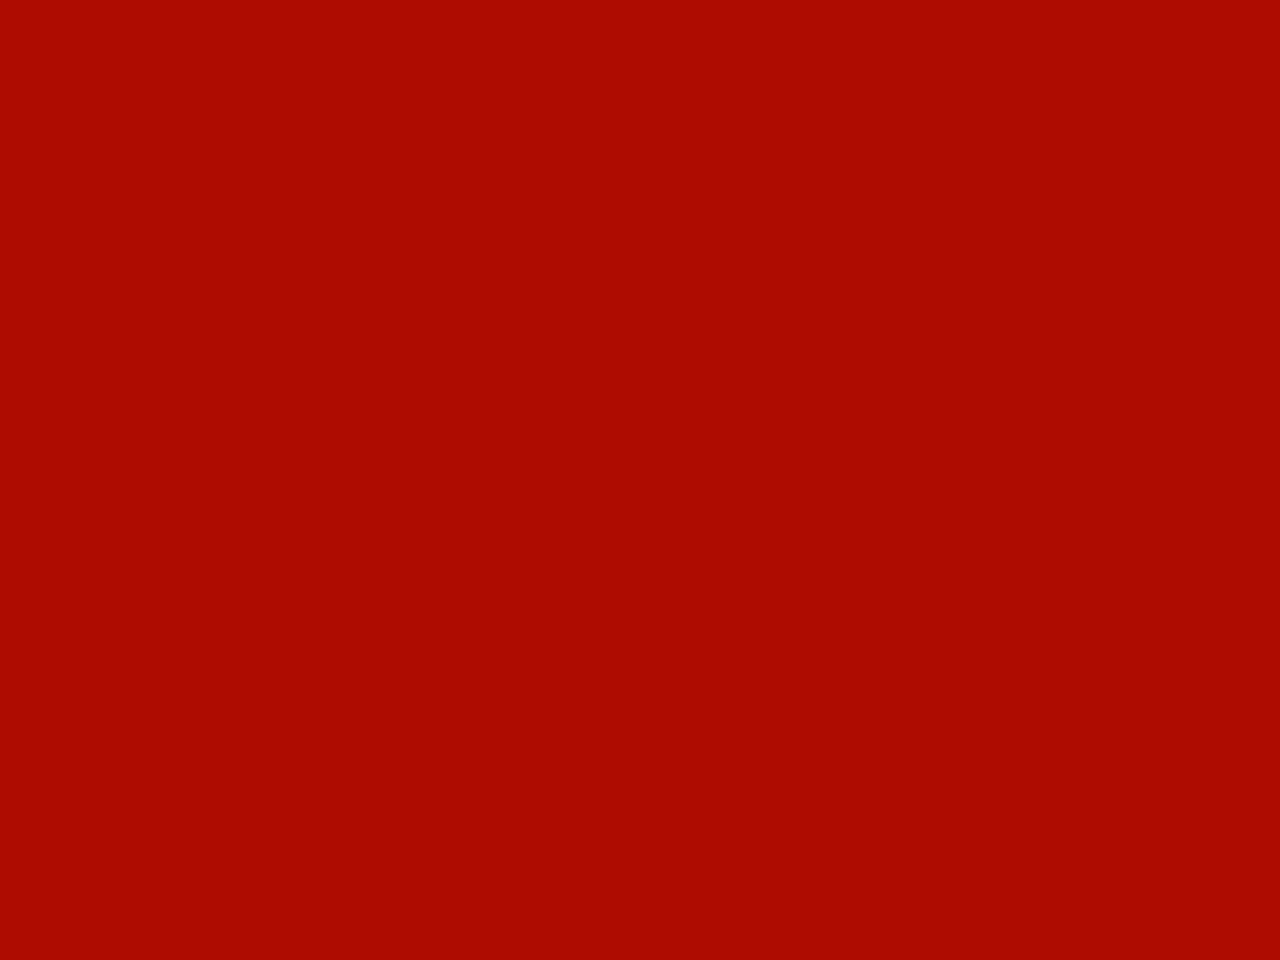 1280x960 Mordant Red 19 Solid Color Background